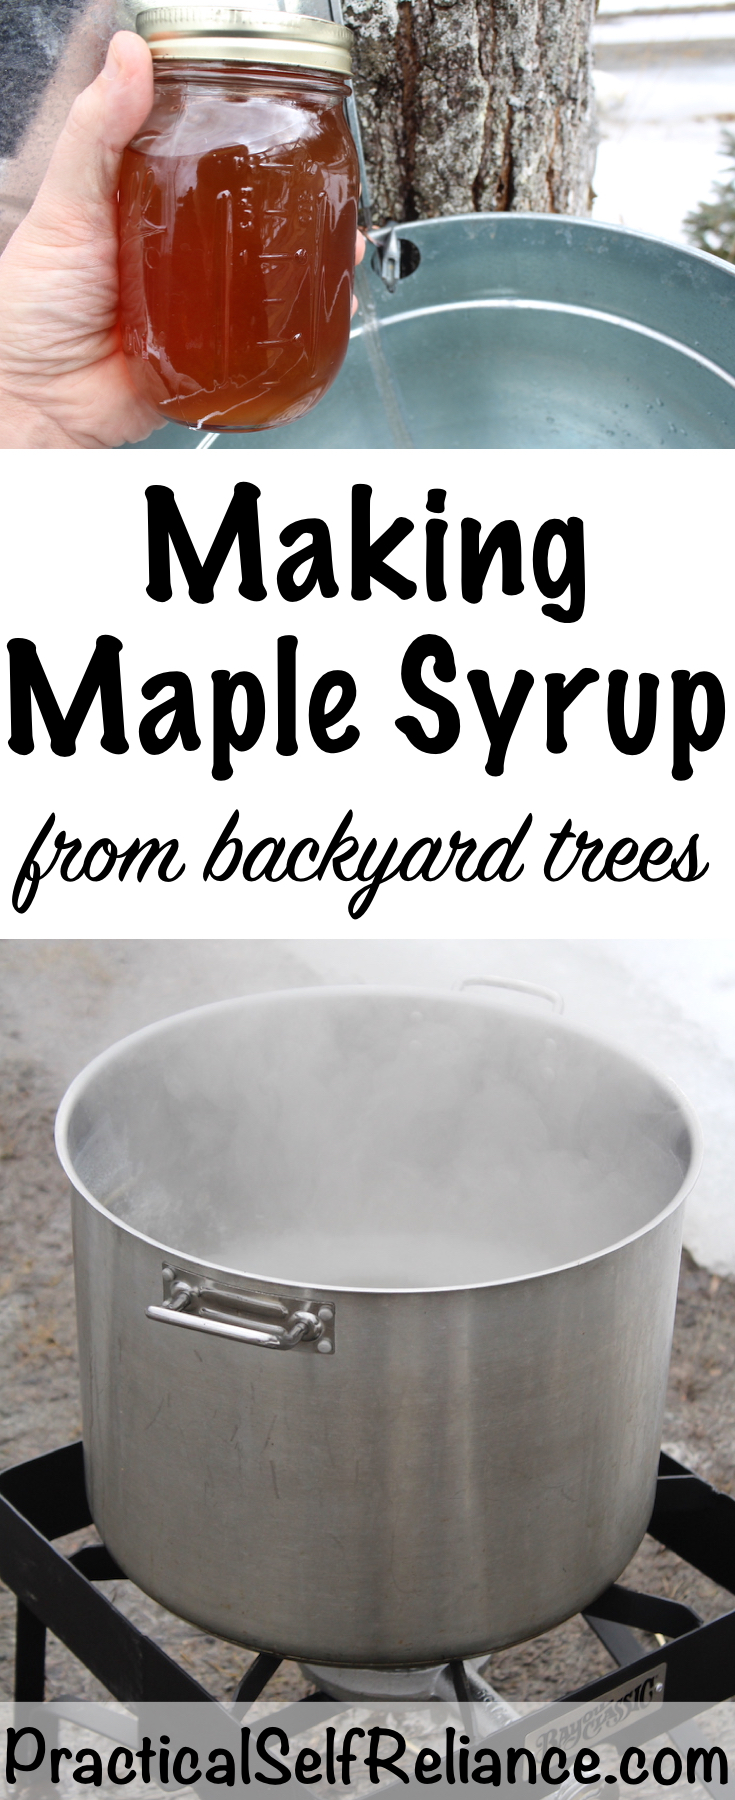 Making Maple Syrup from Backyard Trees #maplesyrup #foodpreservation #homesteading #selfsufficiency #naturalsweetener